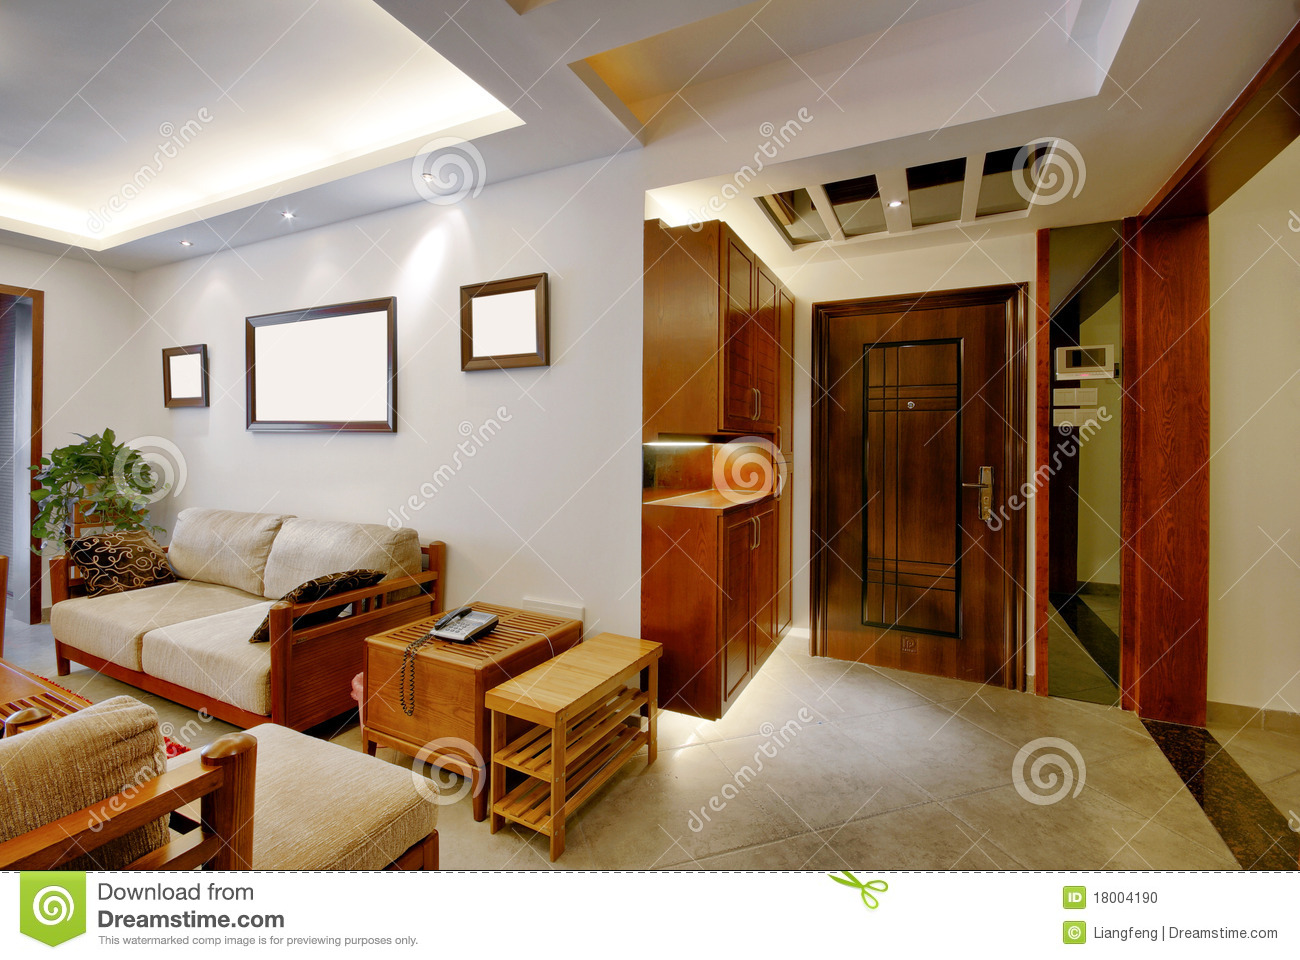 Beautiful home decor stock photo image 18004190 for Beautiful home decorations